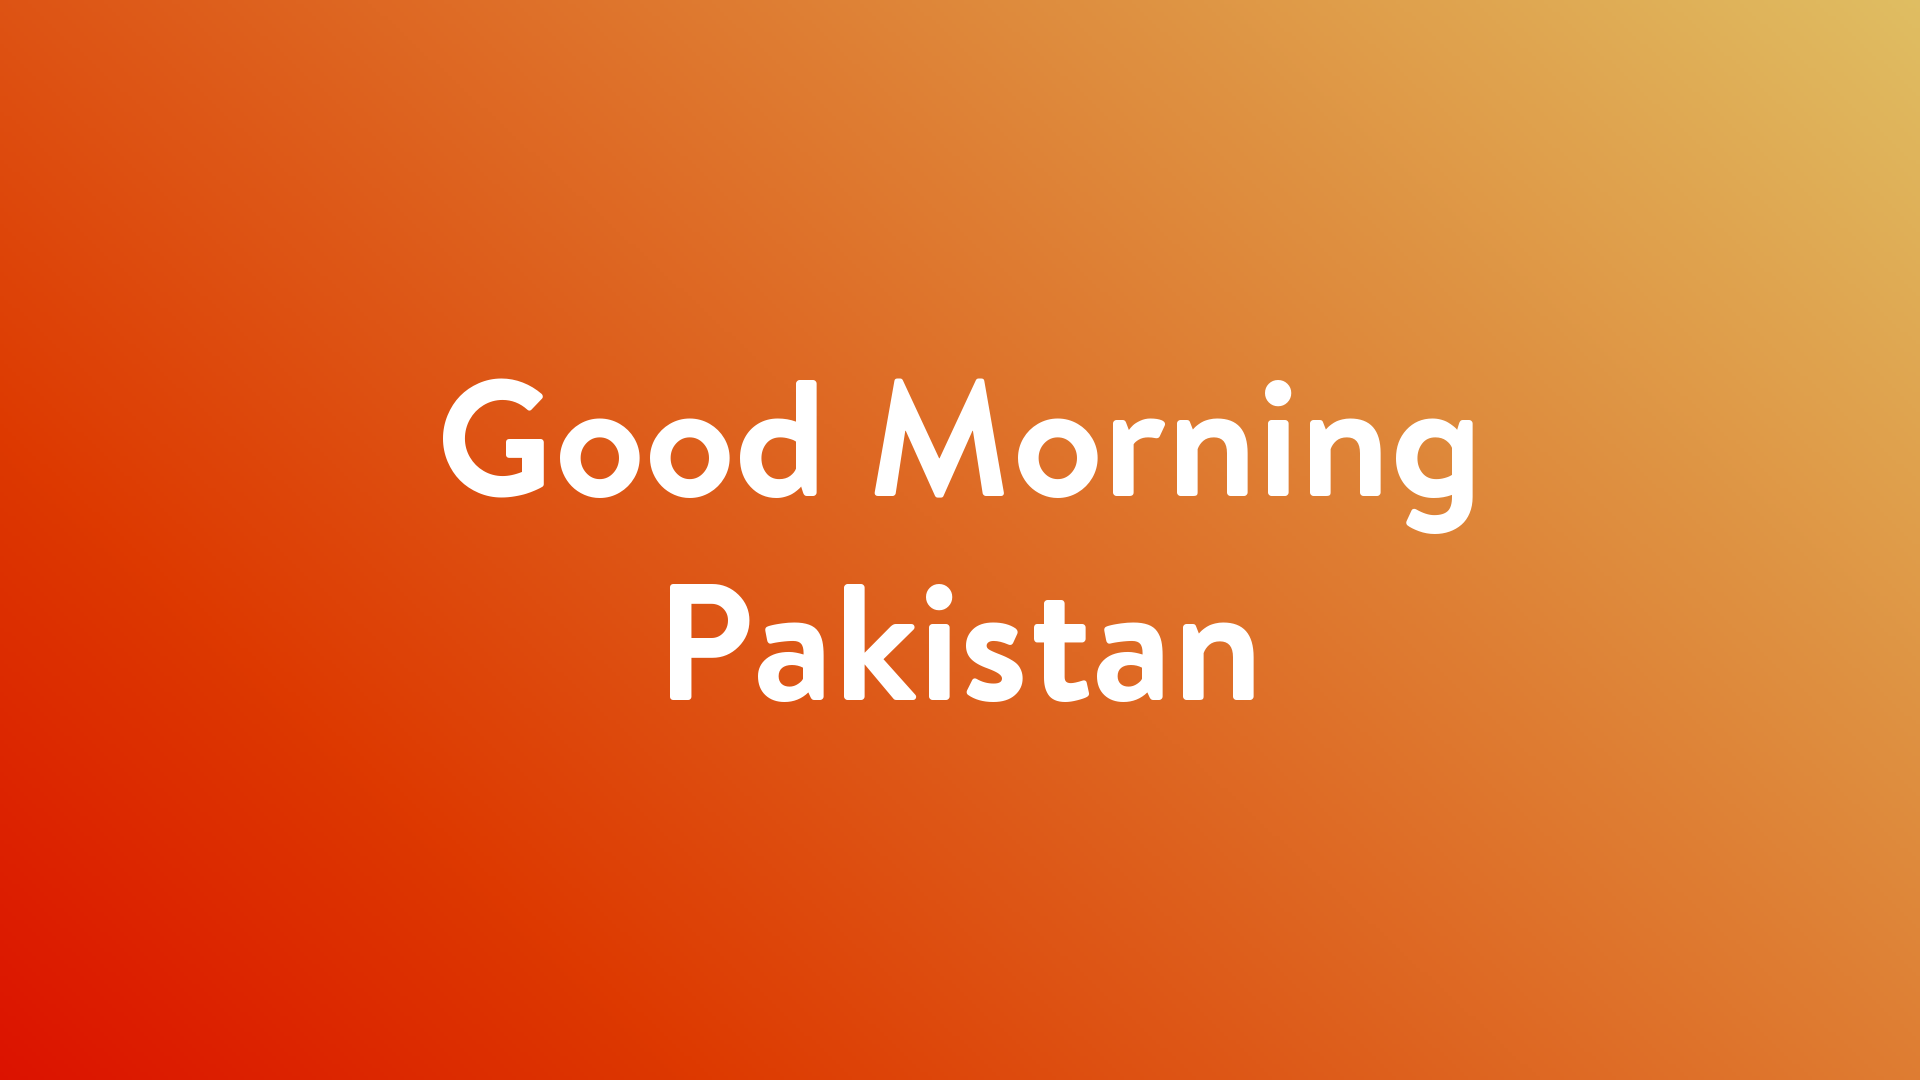 Stream And Watch Good Morning Pakistan Online | Sling TV